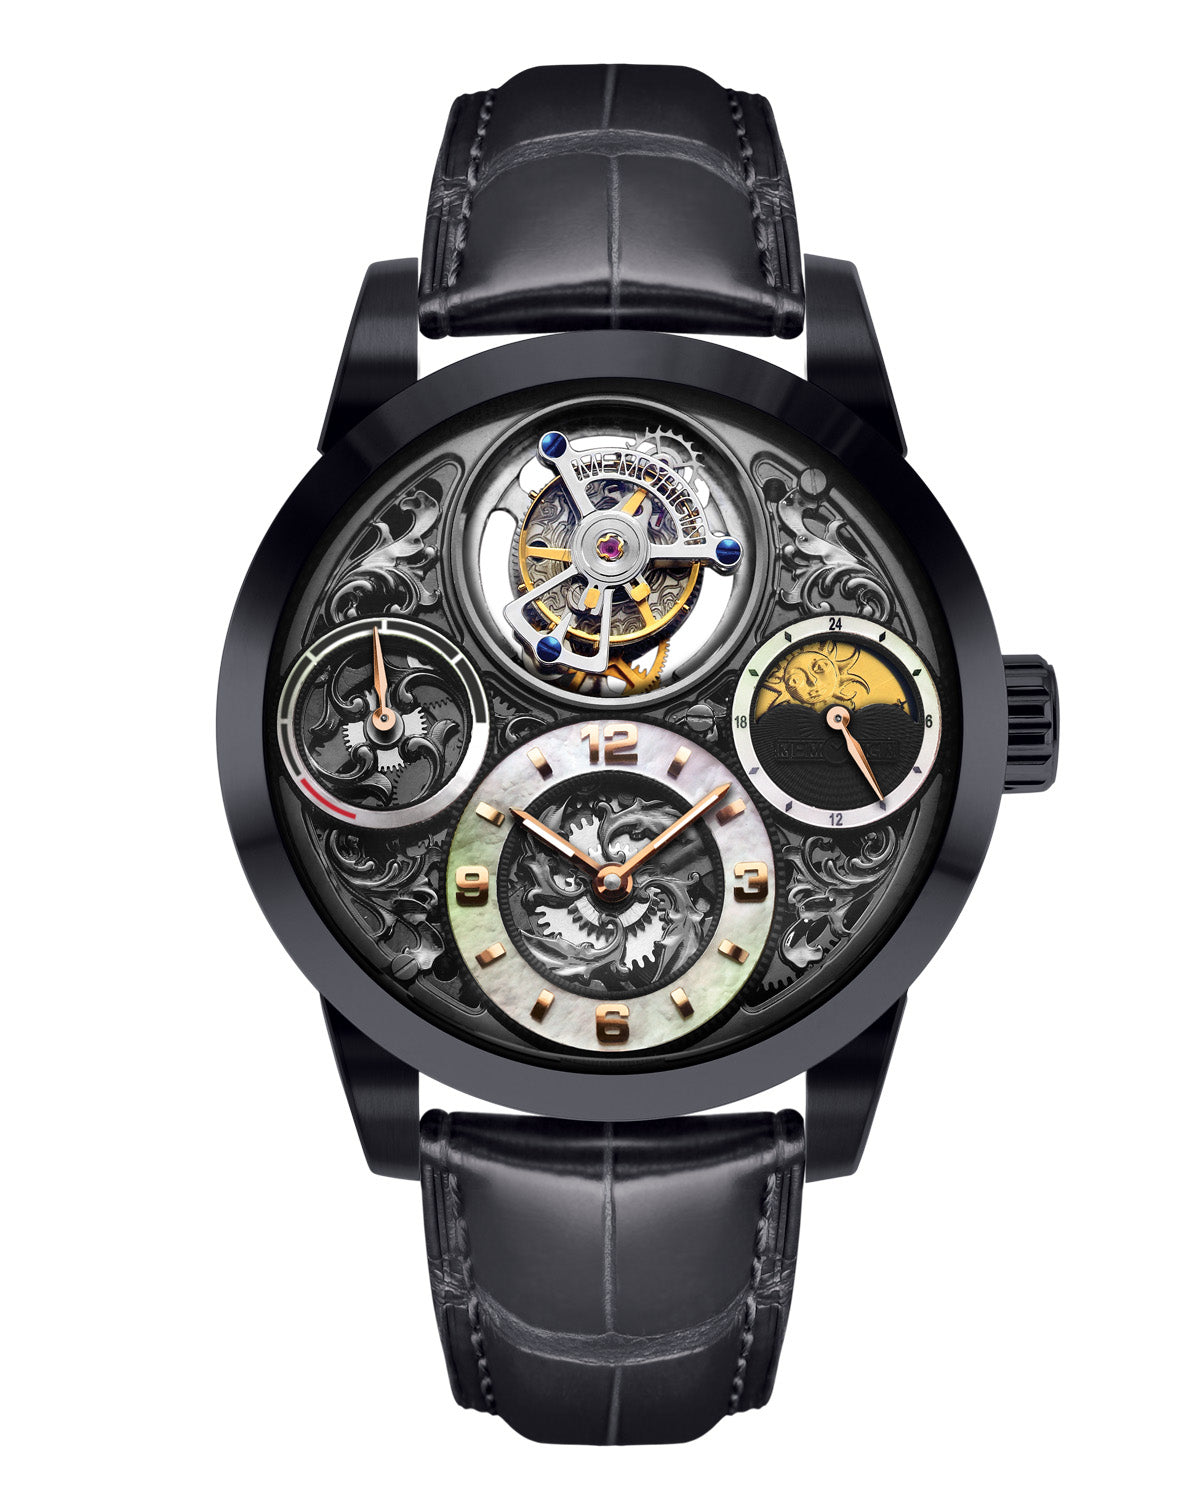 Memorigin Tourbillon Watches Imperial Black img01 Bitcoin